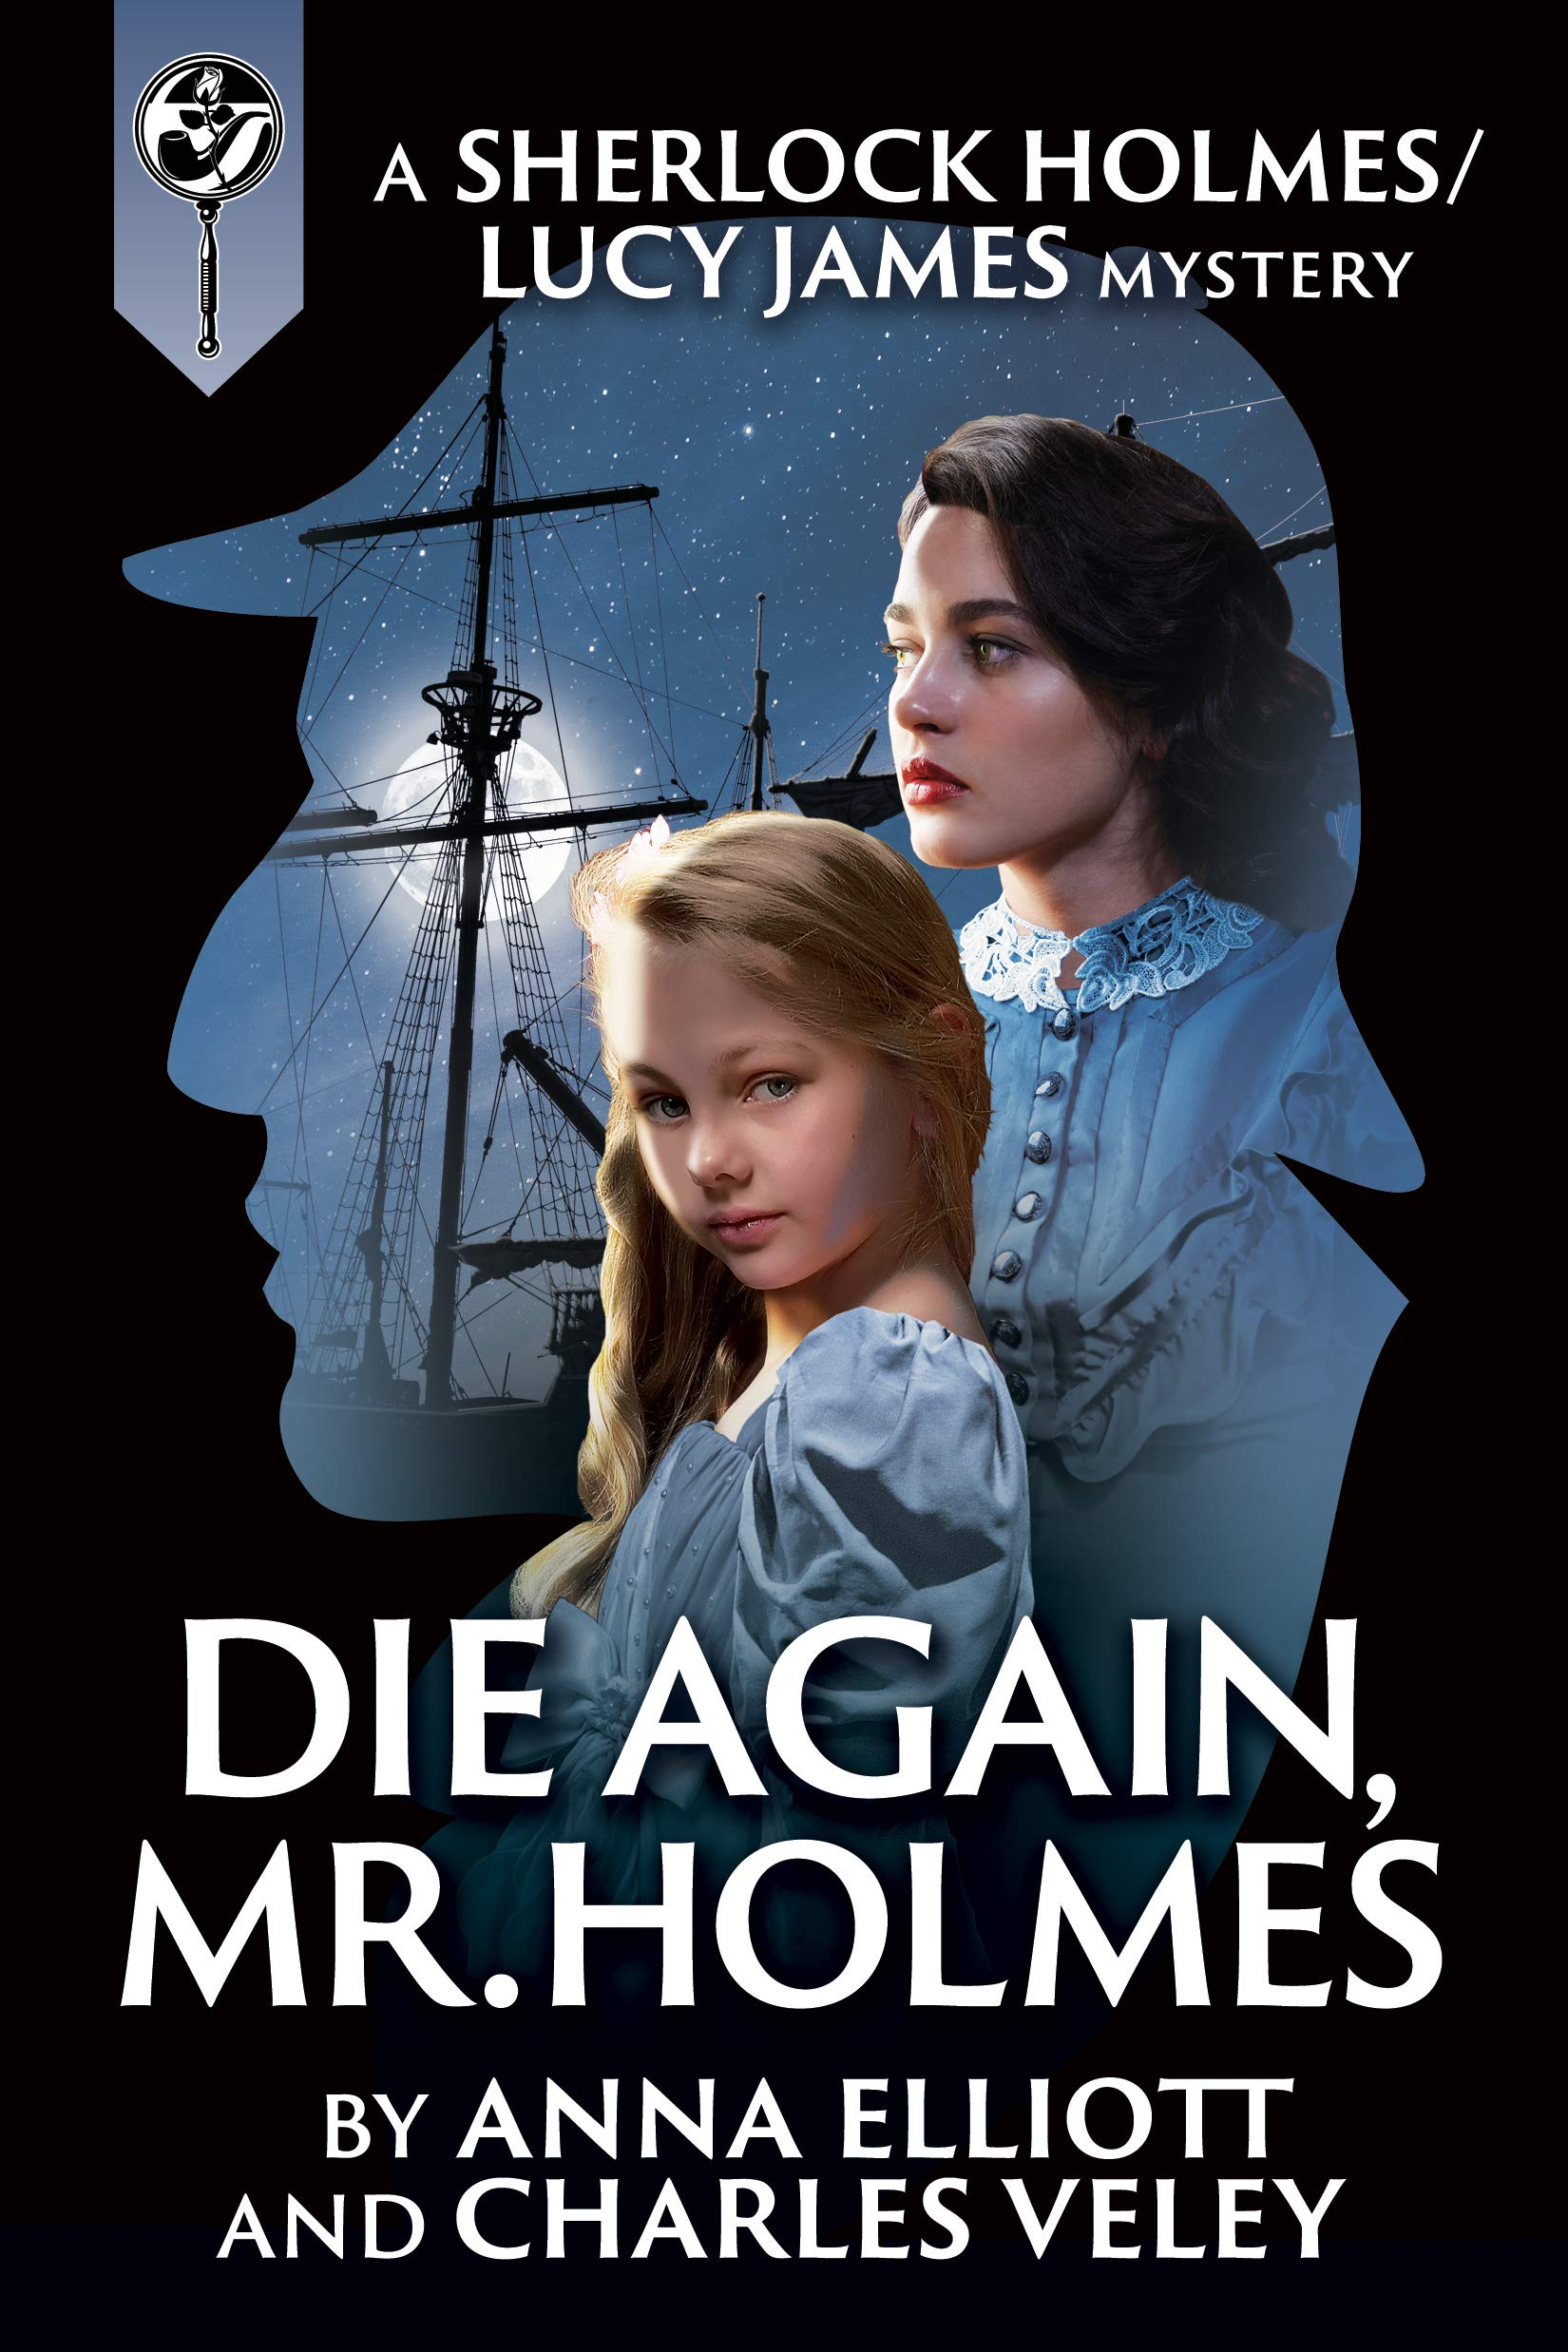 Die Again, Mr. Holmes: A Sherlock Holmes and Lucy James Mystery (The Sherlock Holmes and Lucy James Mysteries Book 8)